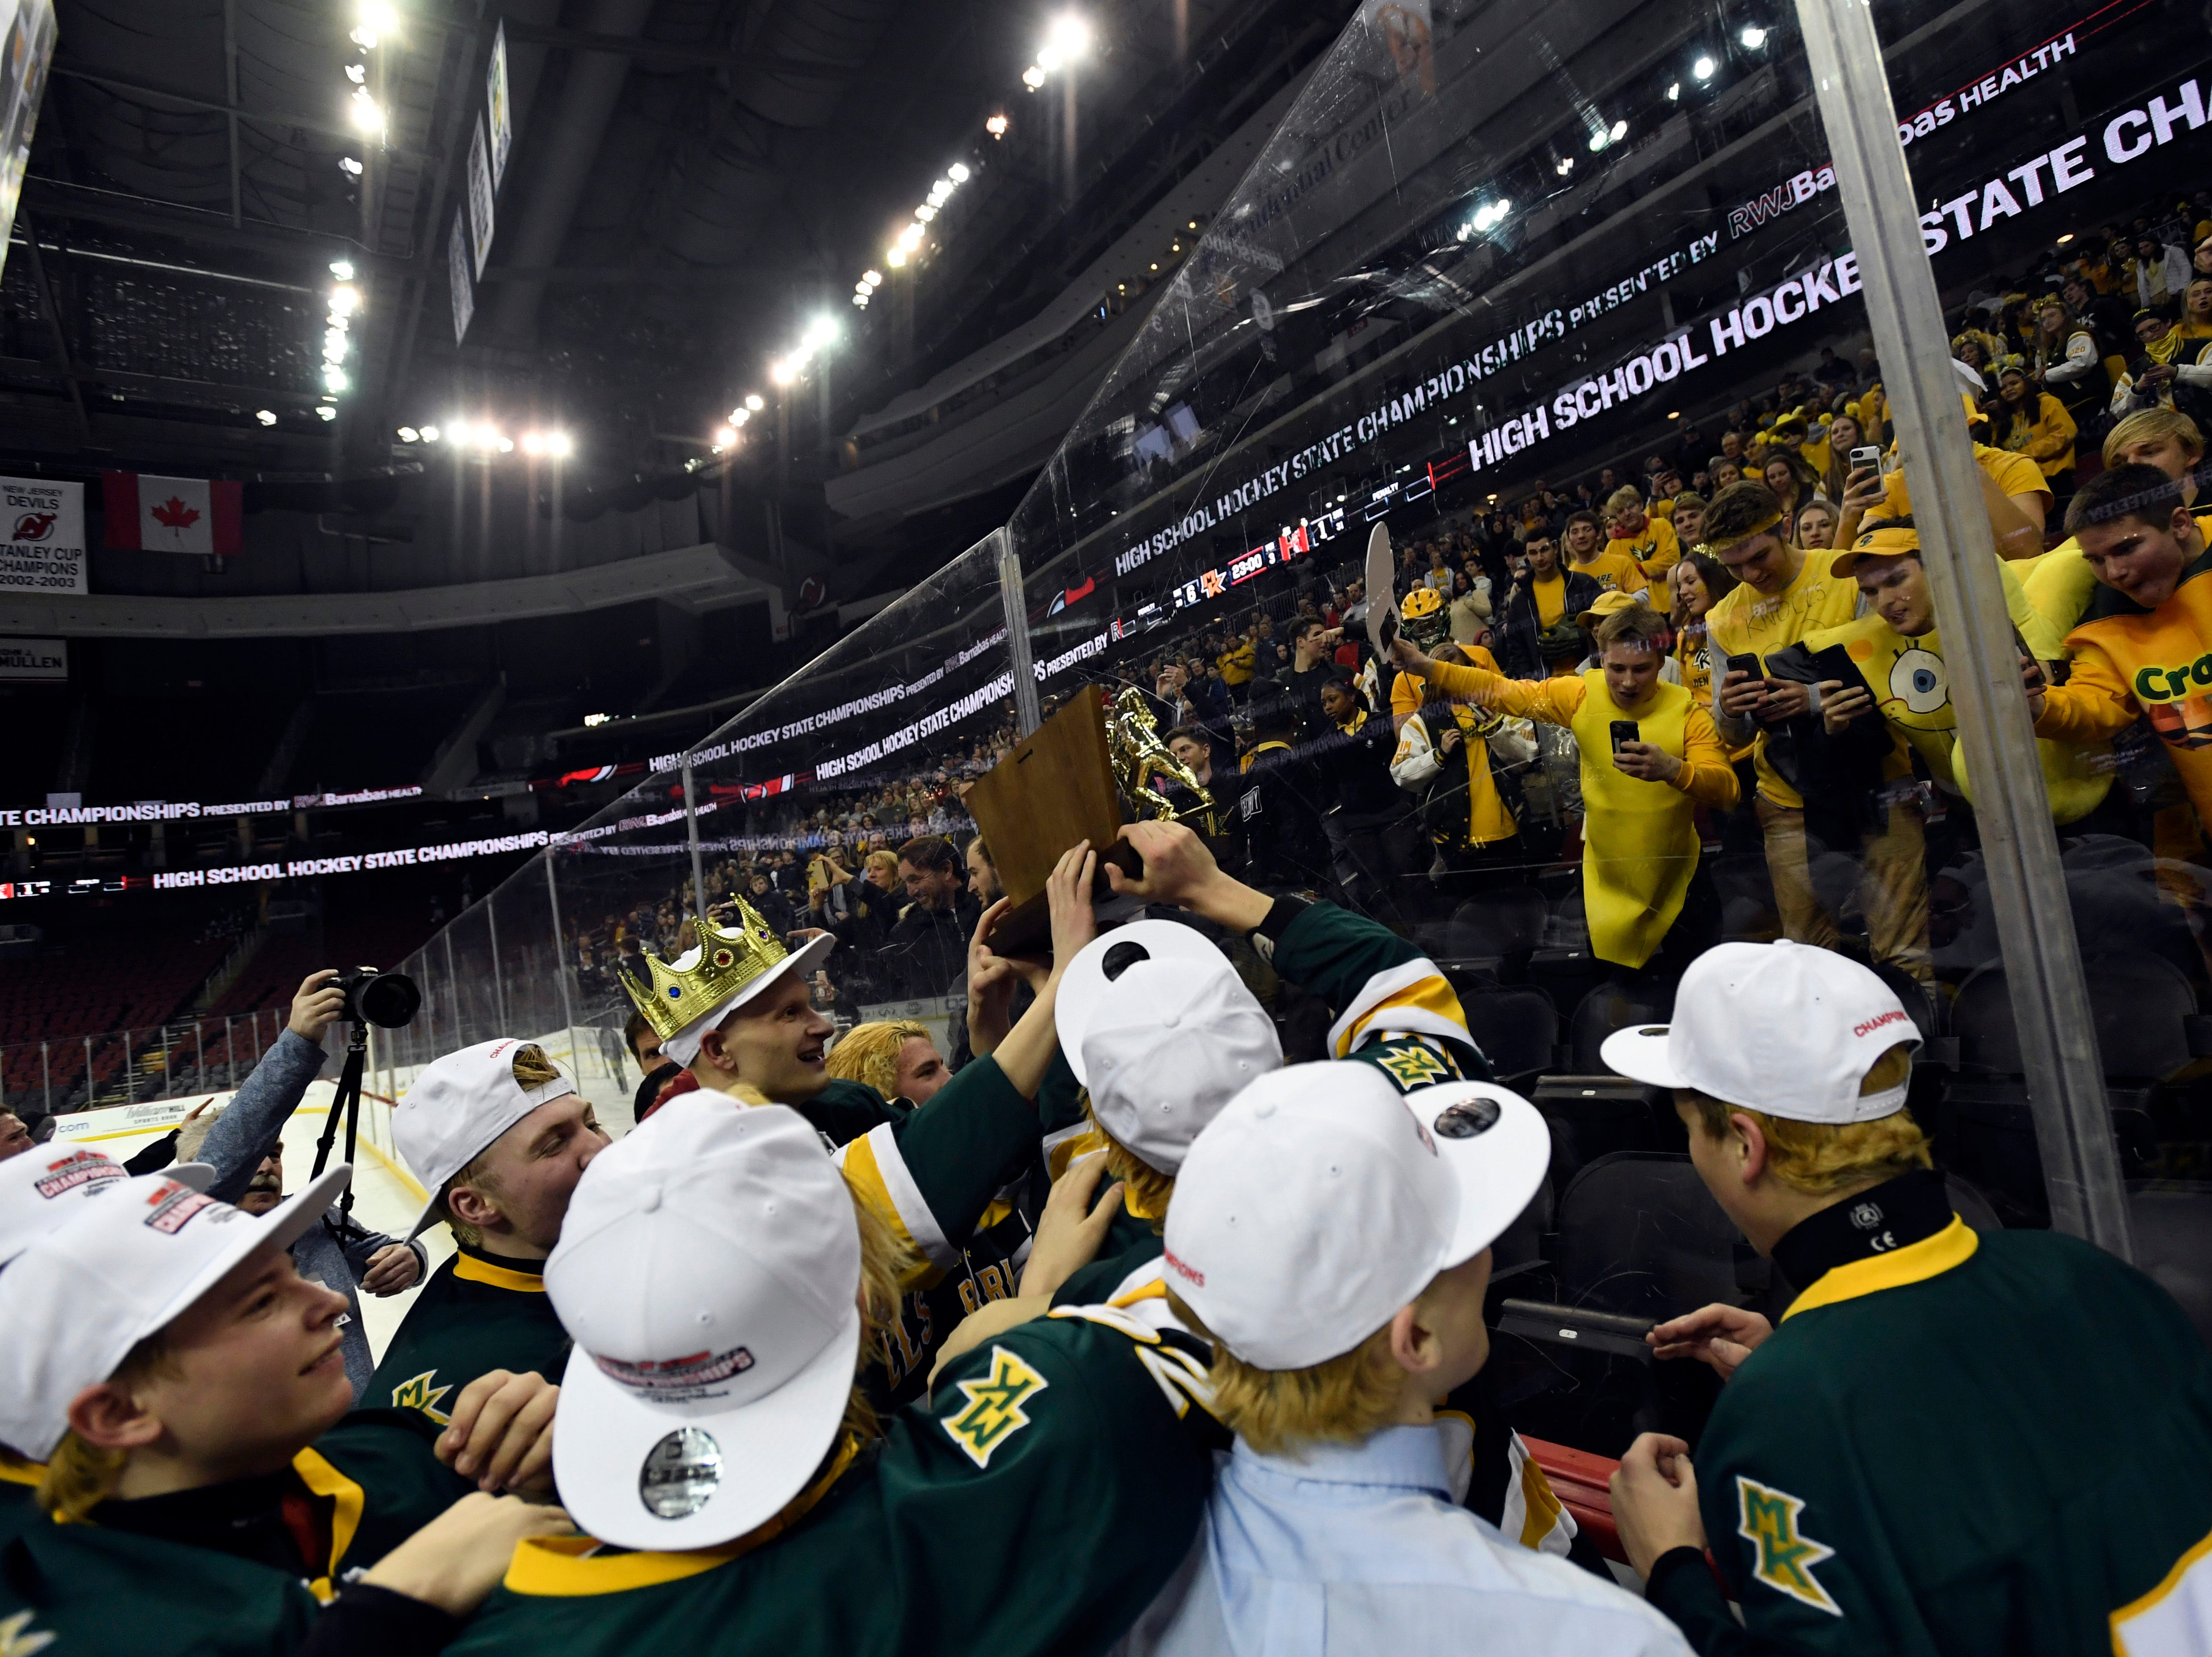 Morris Knolls/Hills players celebrate with the student section after defeating Hillsborough 6-1 in the Public A ice hockey final at the Prudential Center on Monday, March 4, 2019, in Newark.